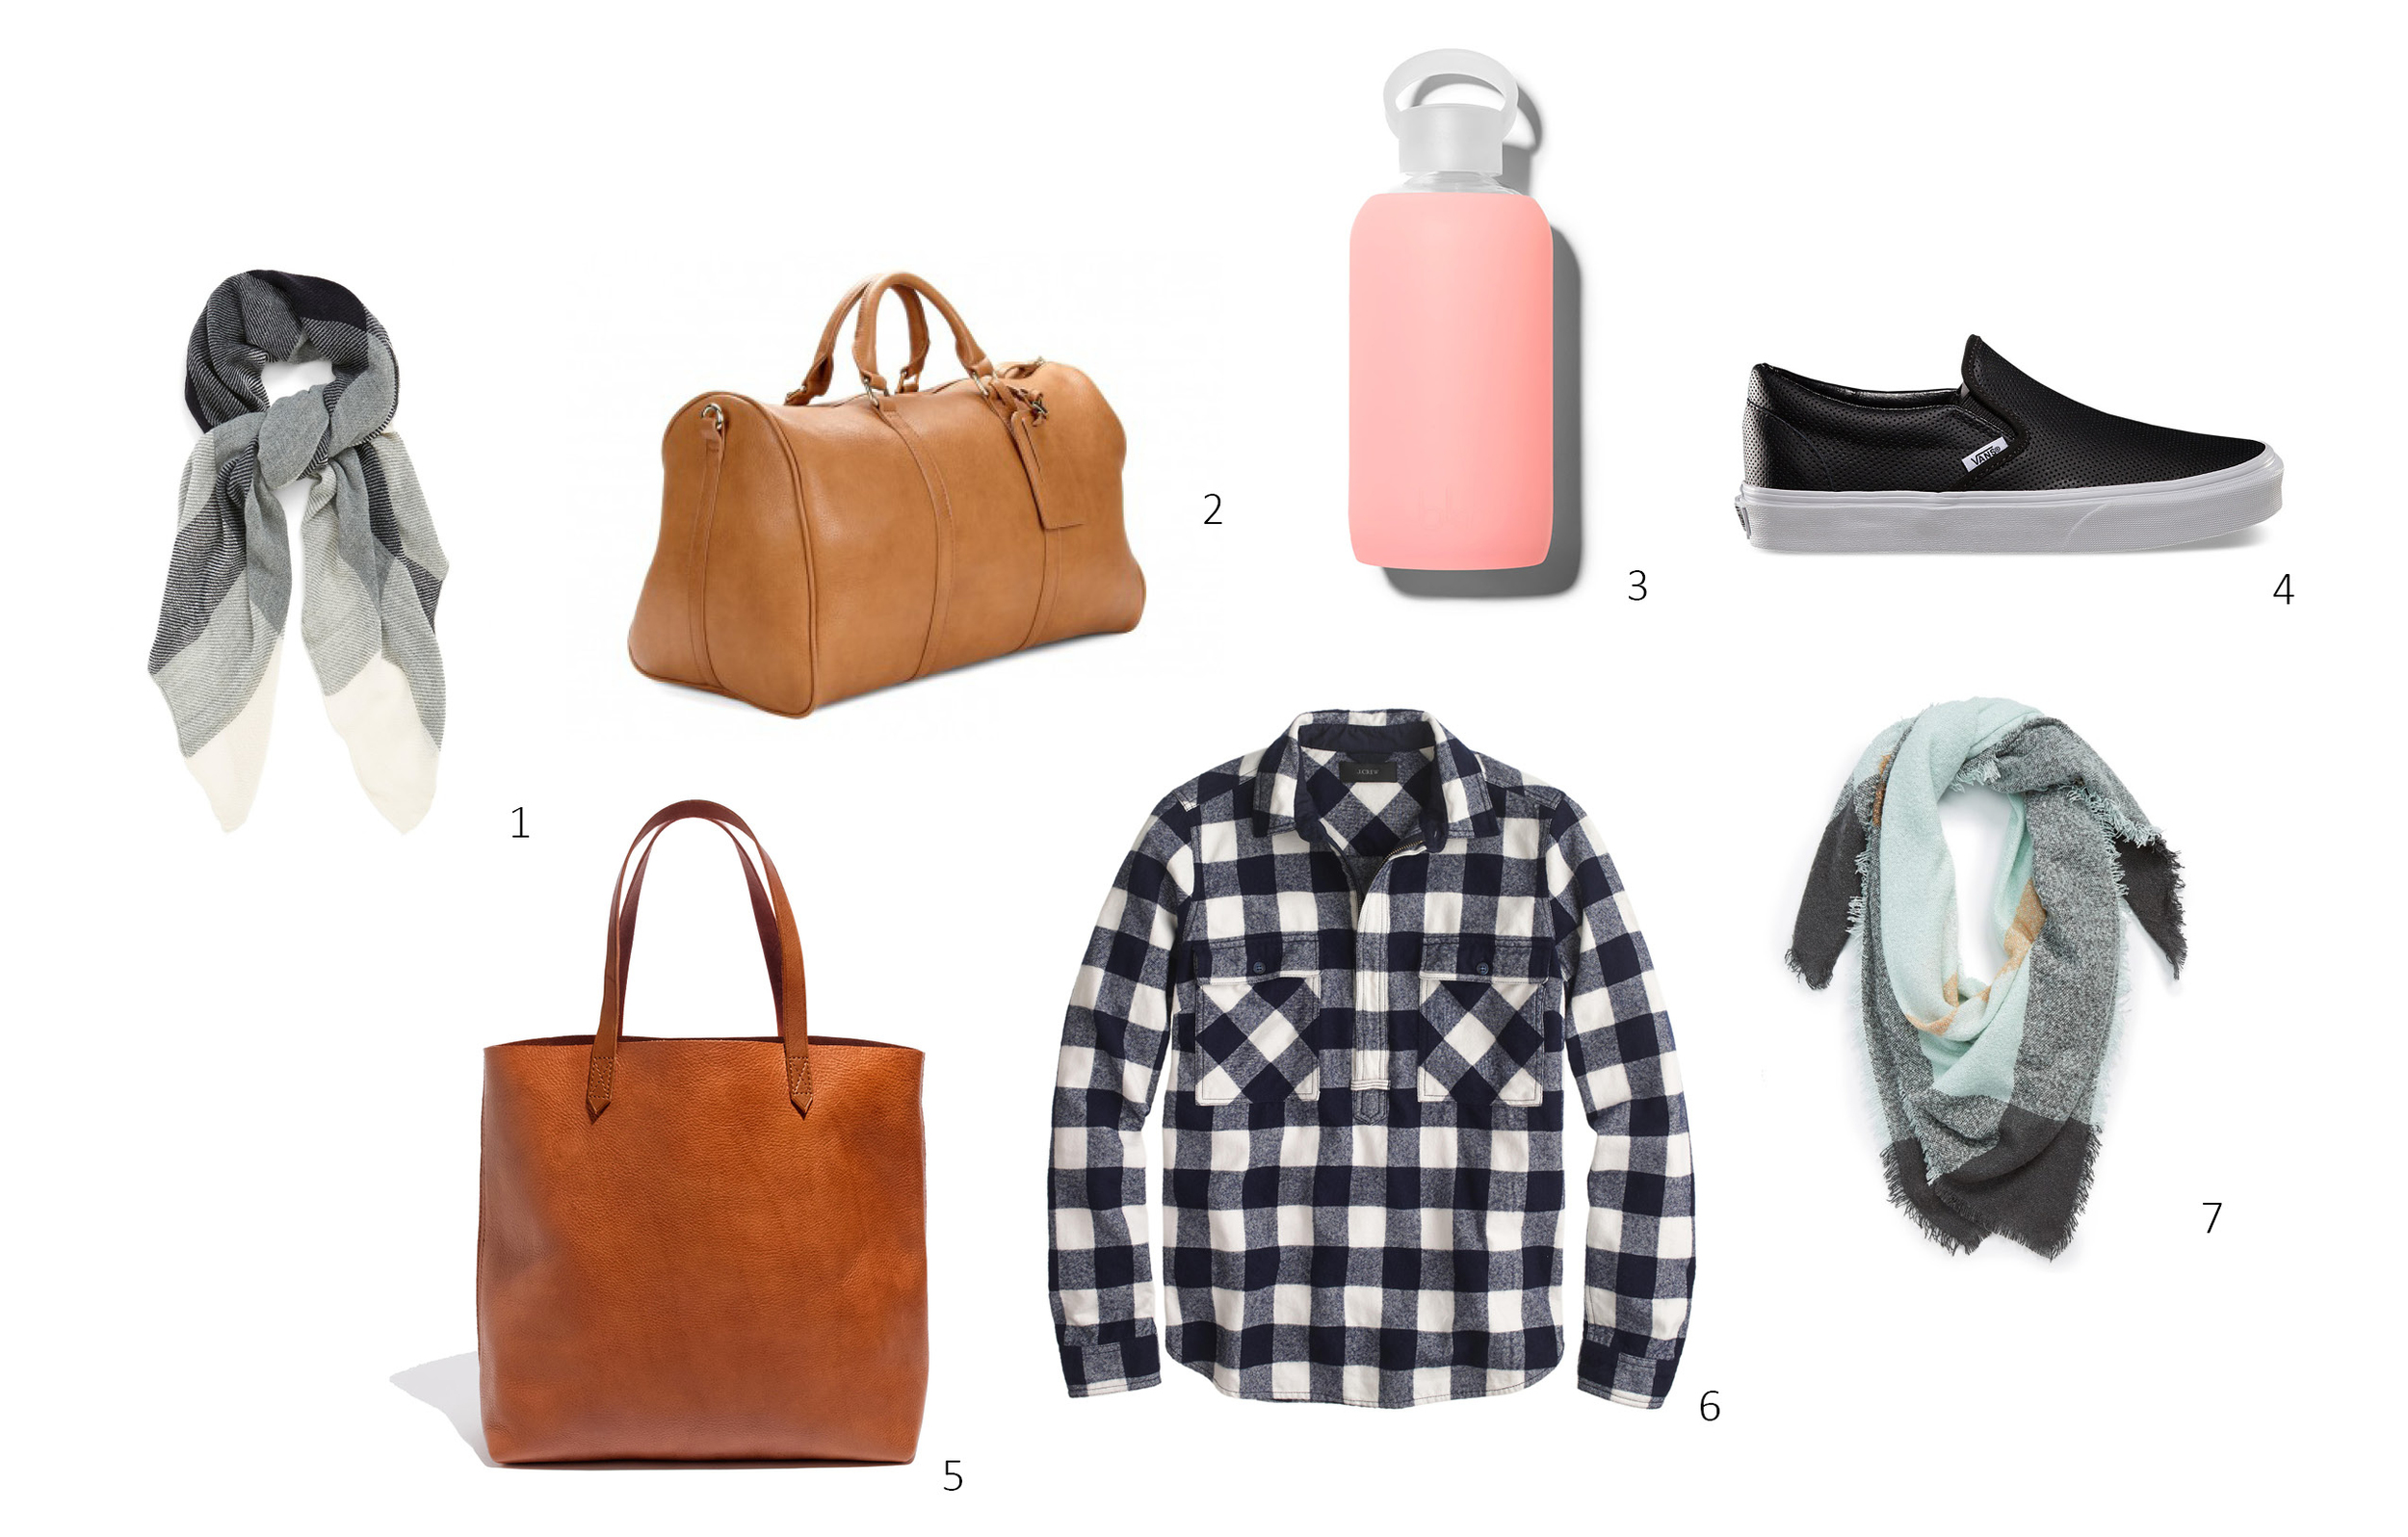 1.  BP Plaid Scarf $24 ; 2.  Sole Society Cassidy Vegan Leather Weekender $69.95 ; 3.  bkr 1 L water bottle $45 ; 4.  Vans Perforated Leather Slip-On $60 ; 5.  Madewell Transport Tote $168 ; 6.  J.Crew Buffalo Check Shirt-Jacket $118 ; 7.  David & Young Square Blanket Scarf $28